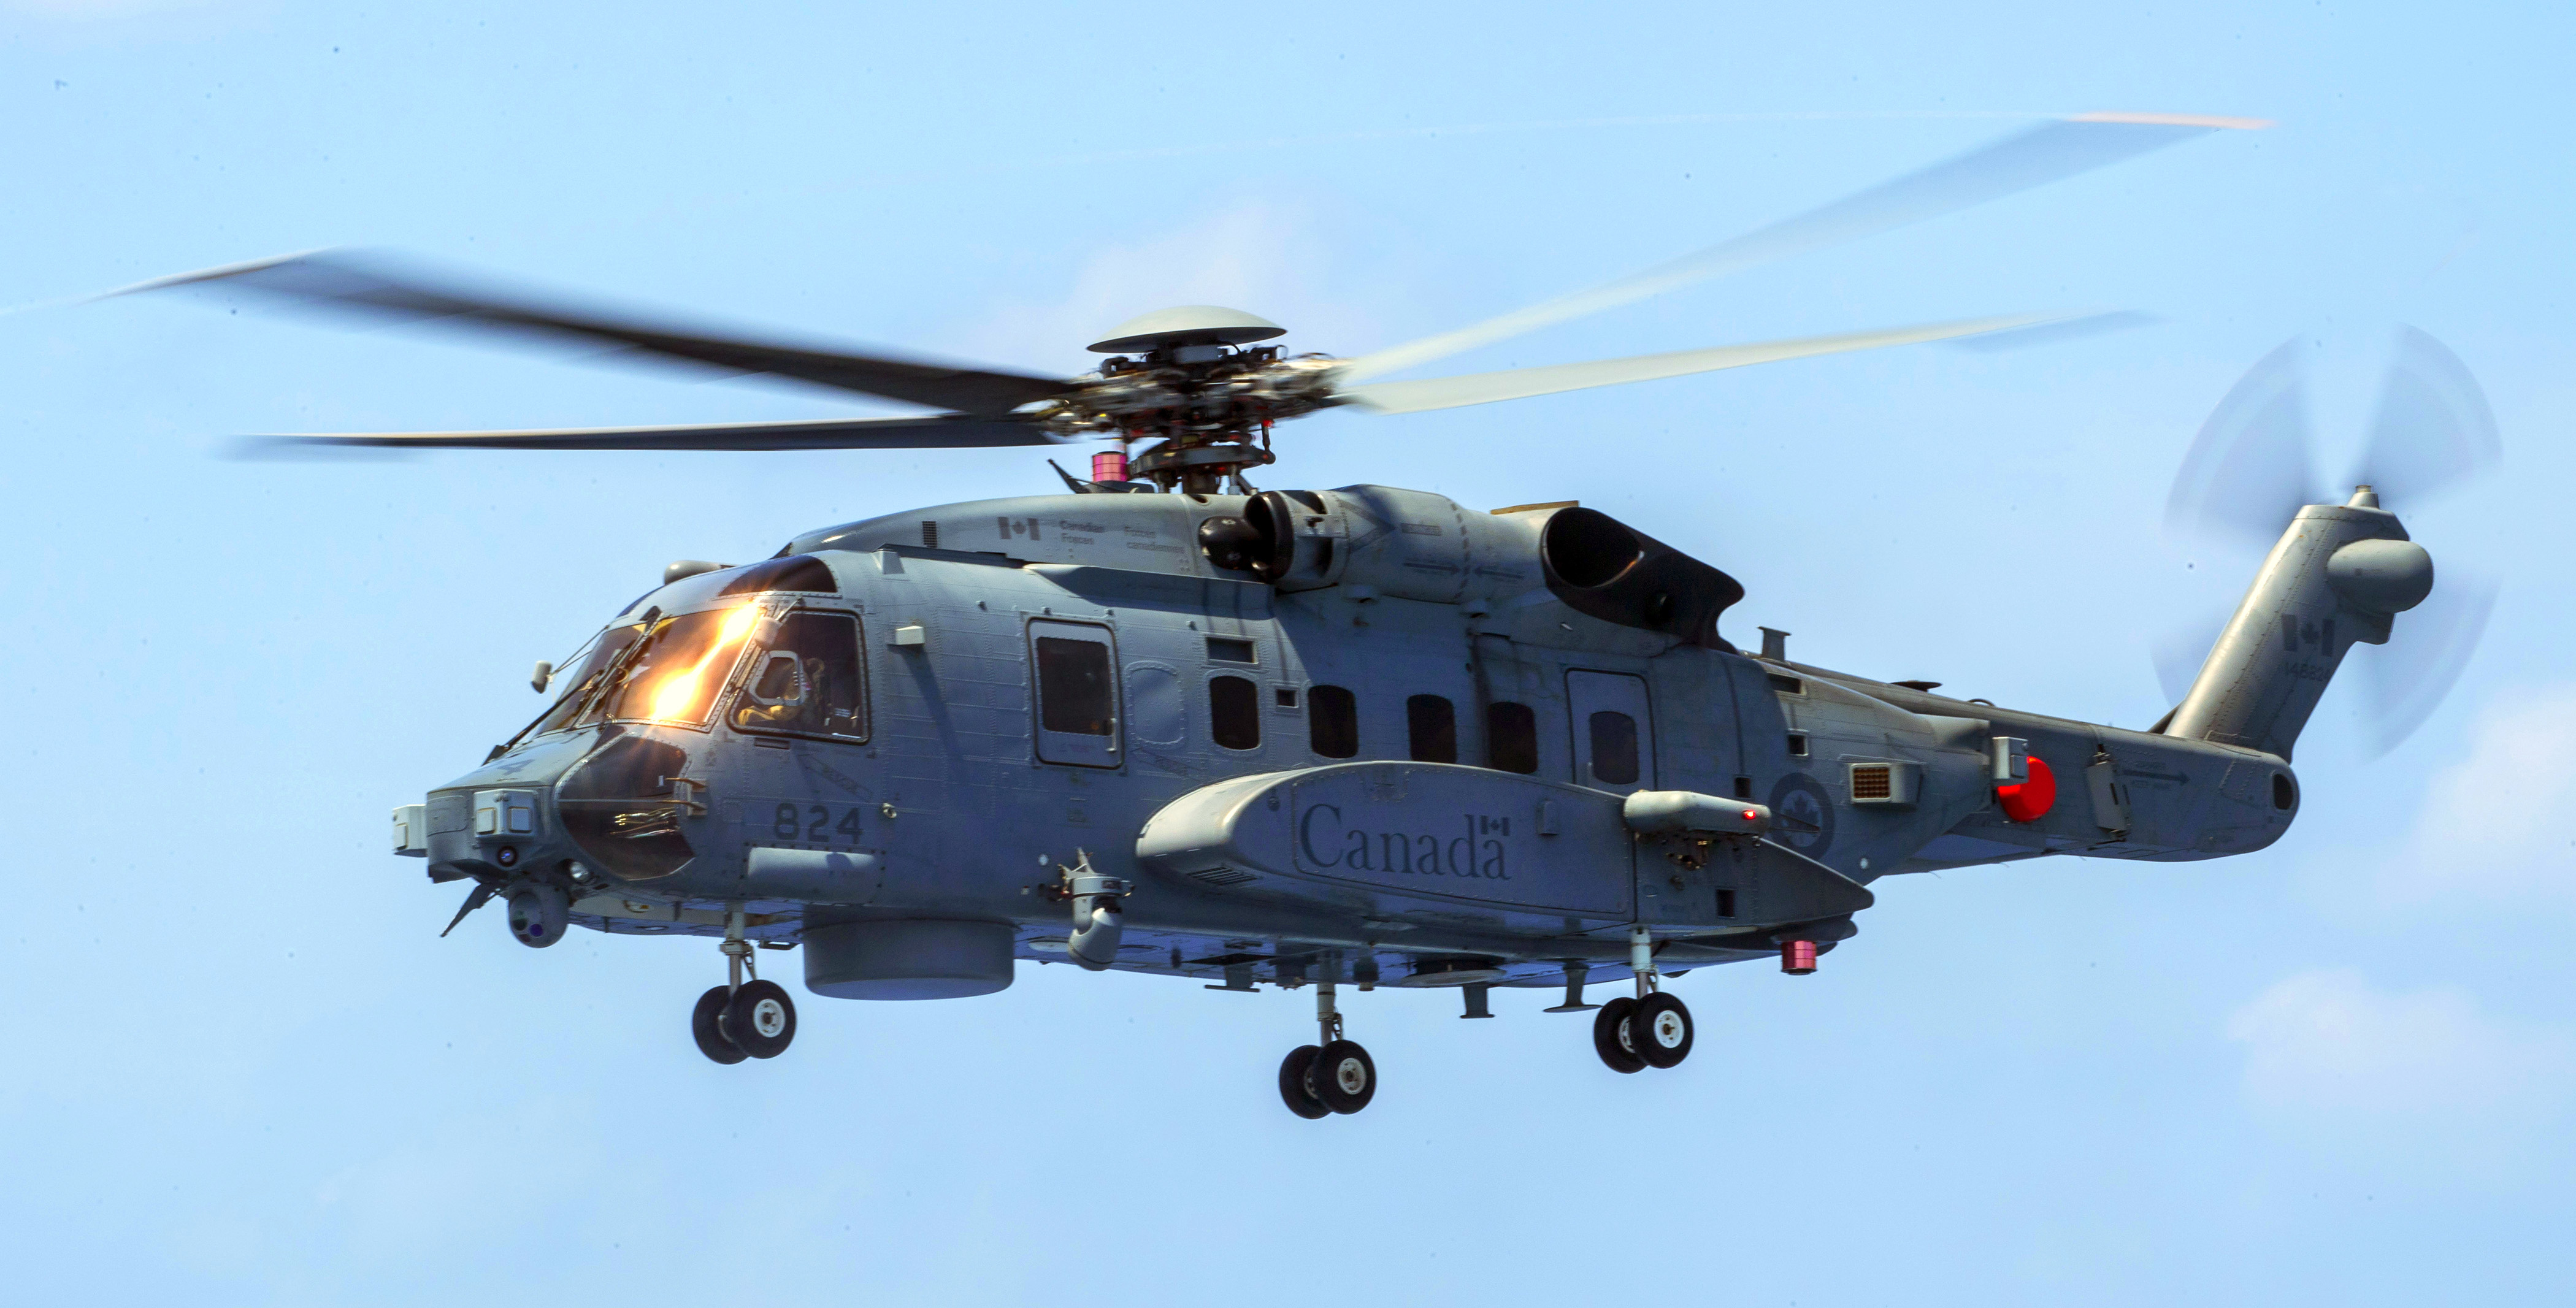 A CH-148 Cyclone helicopter